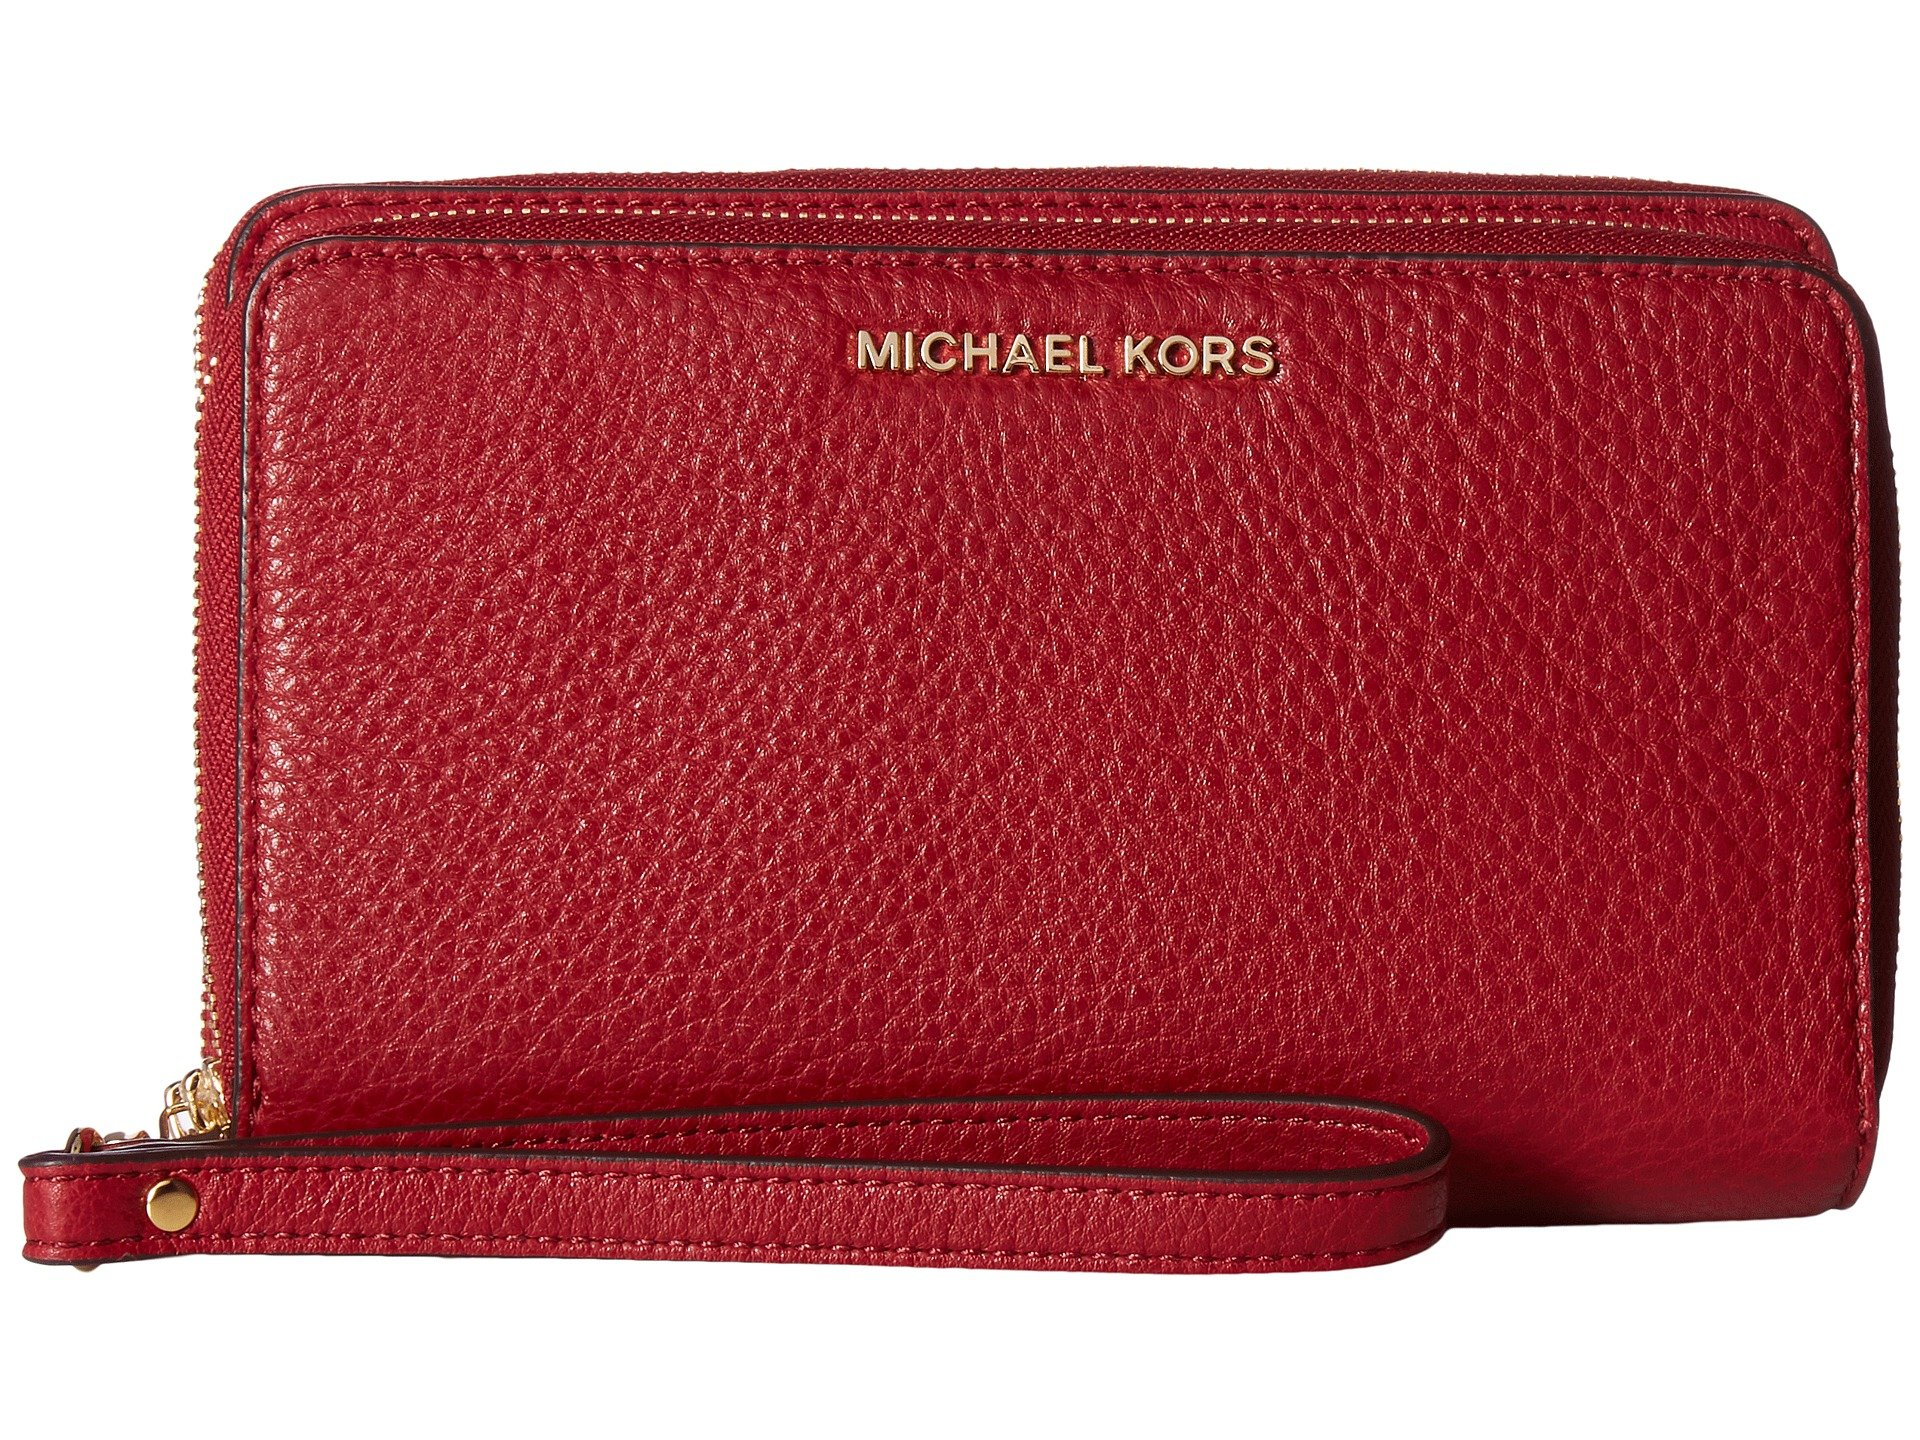 Michael Kors Adele Large Smartphone Wristlet in Cherry by MICHAEL Michael Kors